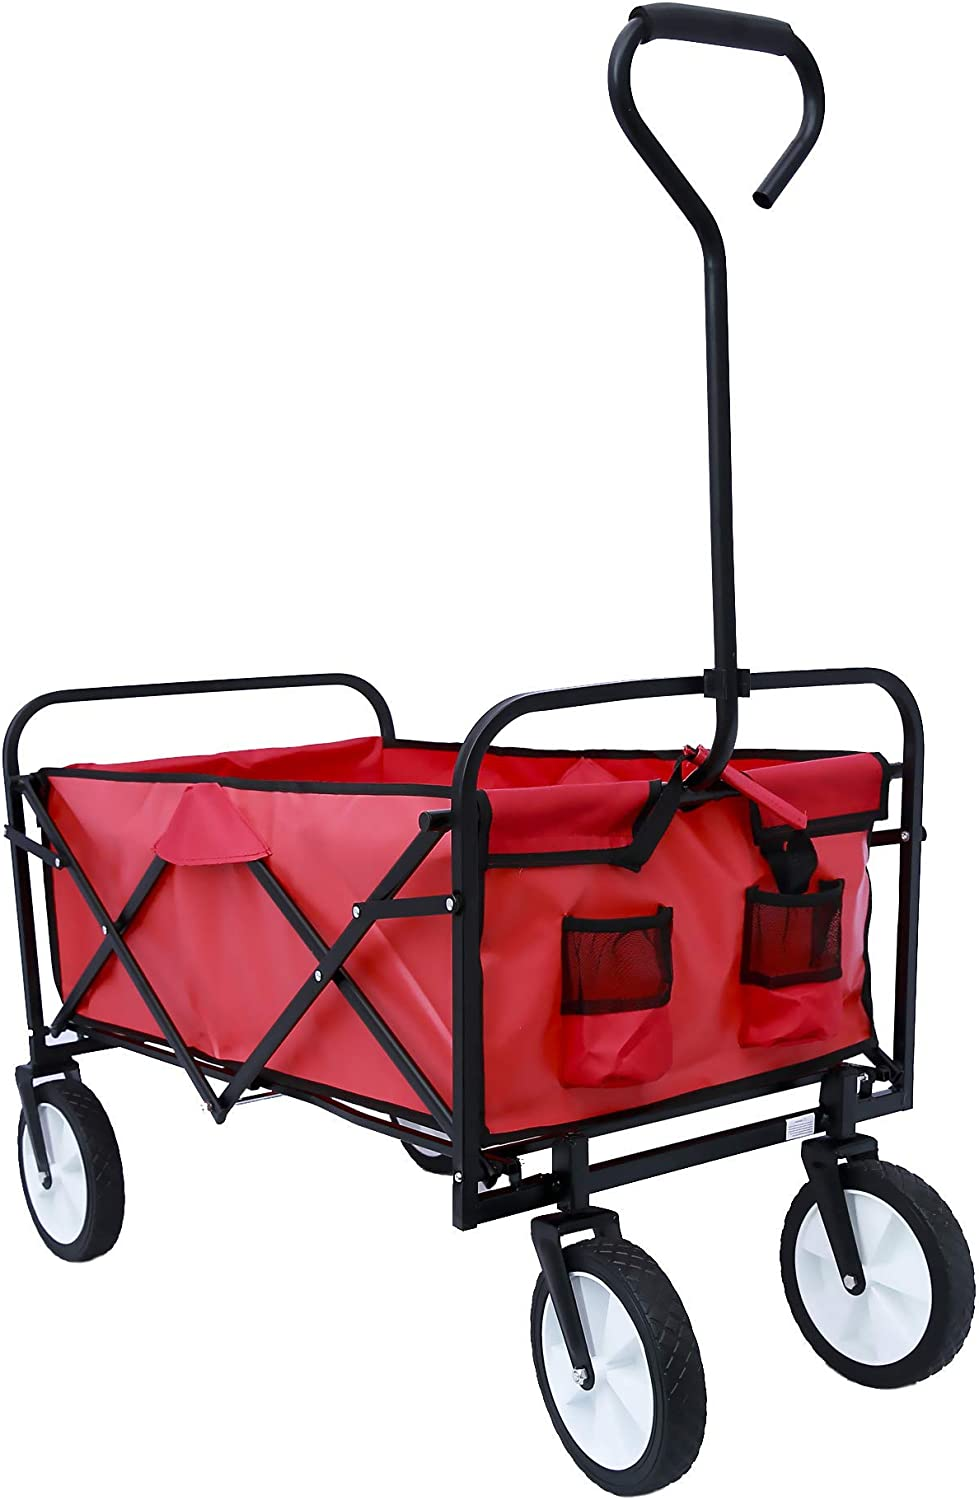 ALI VIRGO Collapsible Wagon Folding Camping Outdoor Garden Shopping Beach Heavy Duty Utility Carts with All-Terrain Wheels, Red